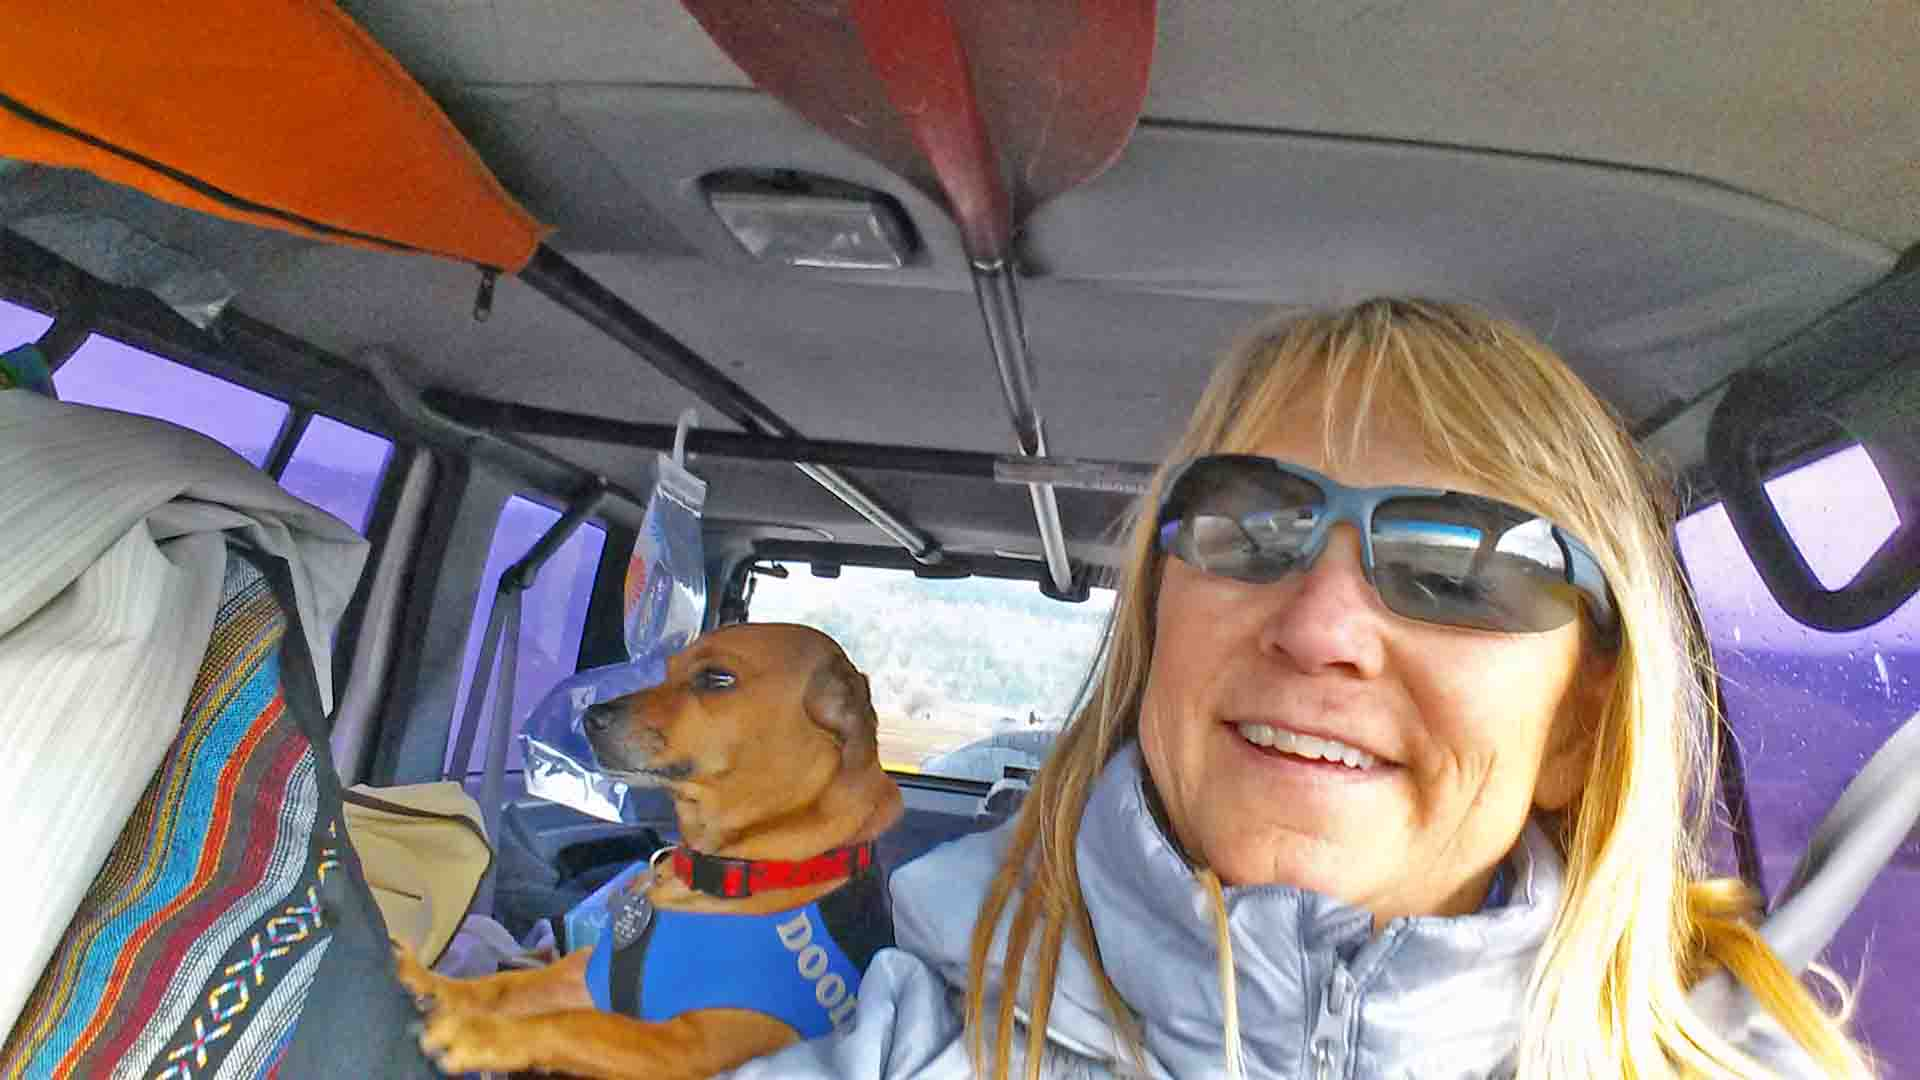 SUP pup day in winter - pares paddling!! Me and my Doodle. Photo: (c) Barb Ayers, DogDairy.org